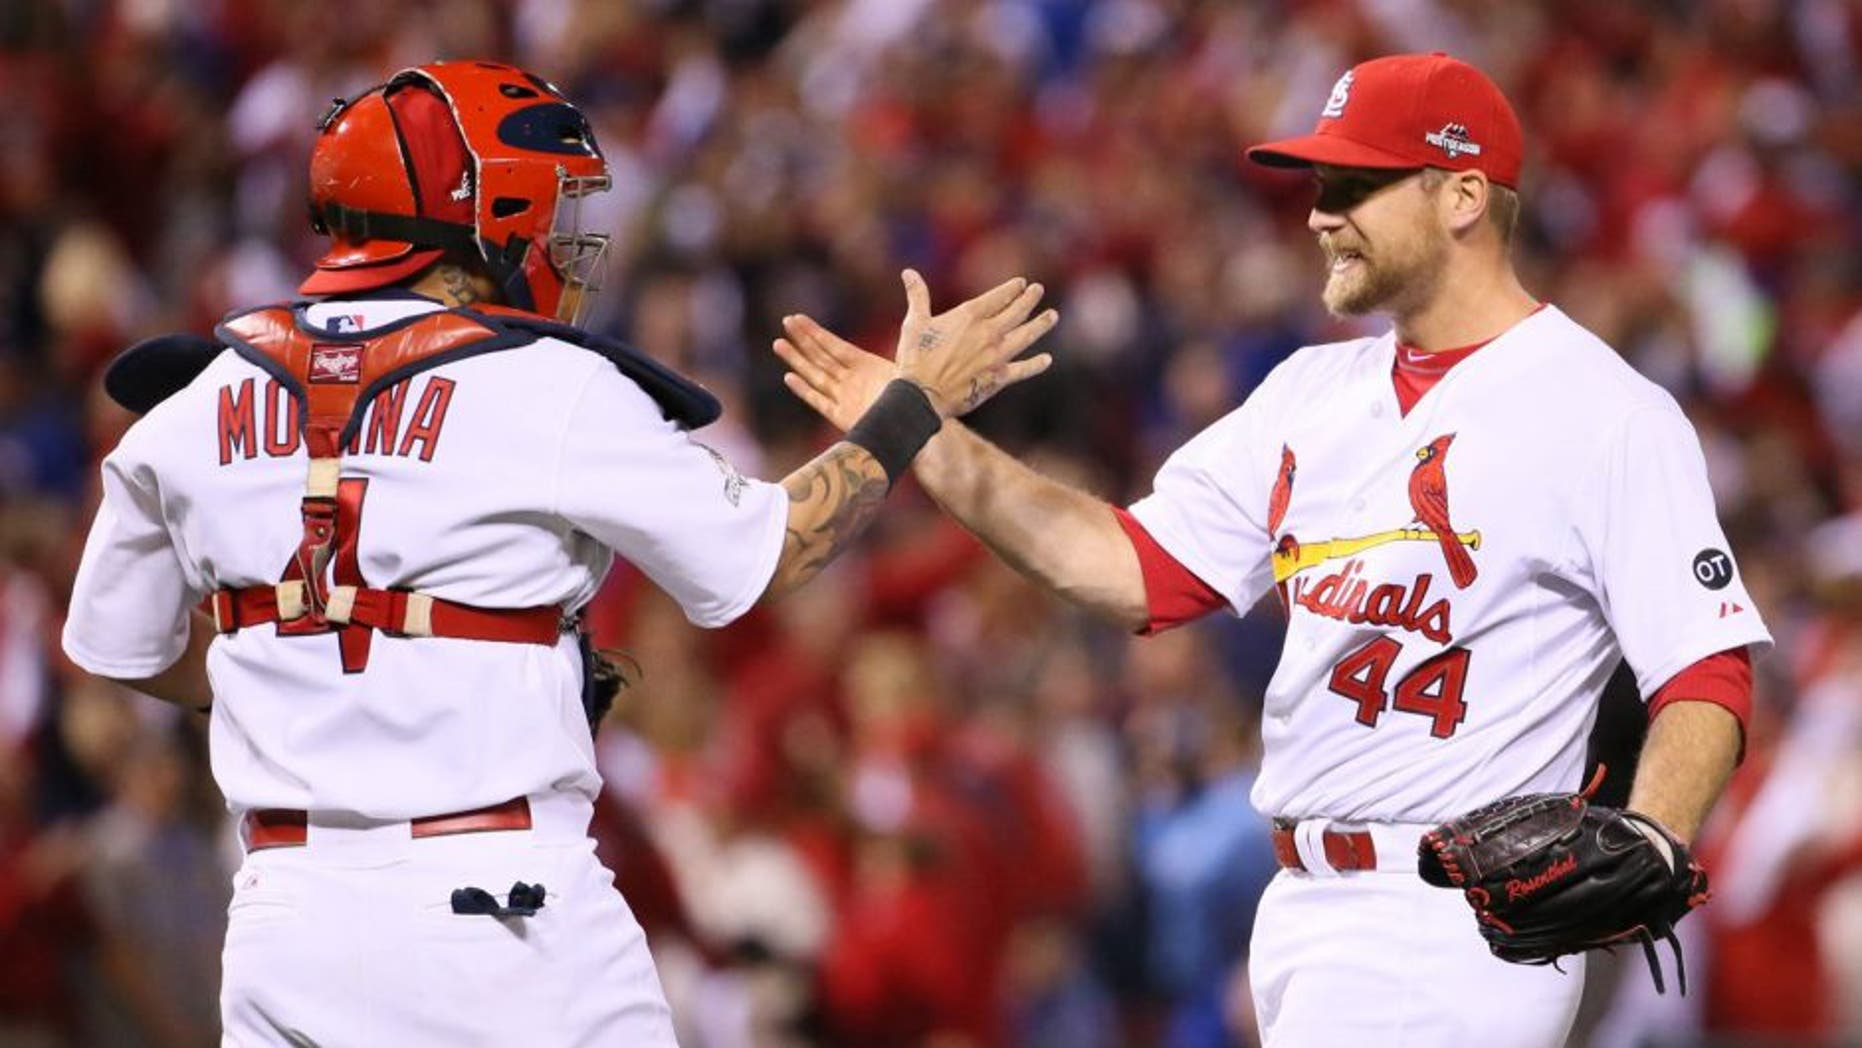 St. Louis Cardinals closer Trevor Rosenthal, right, celebrates with catcher Yadier Molina after preserving the shutout victory in the ninth inning against the Chicago Cubs in Game 1 of the NLDS on Friday, Oct. 9, 2015, at Busch Stadium in St. Louis. The Cards won, 4-0. (Chris Lee/St. Louis Post-Dispatch/TNS via Getty Images)